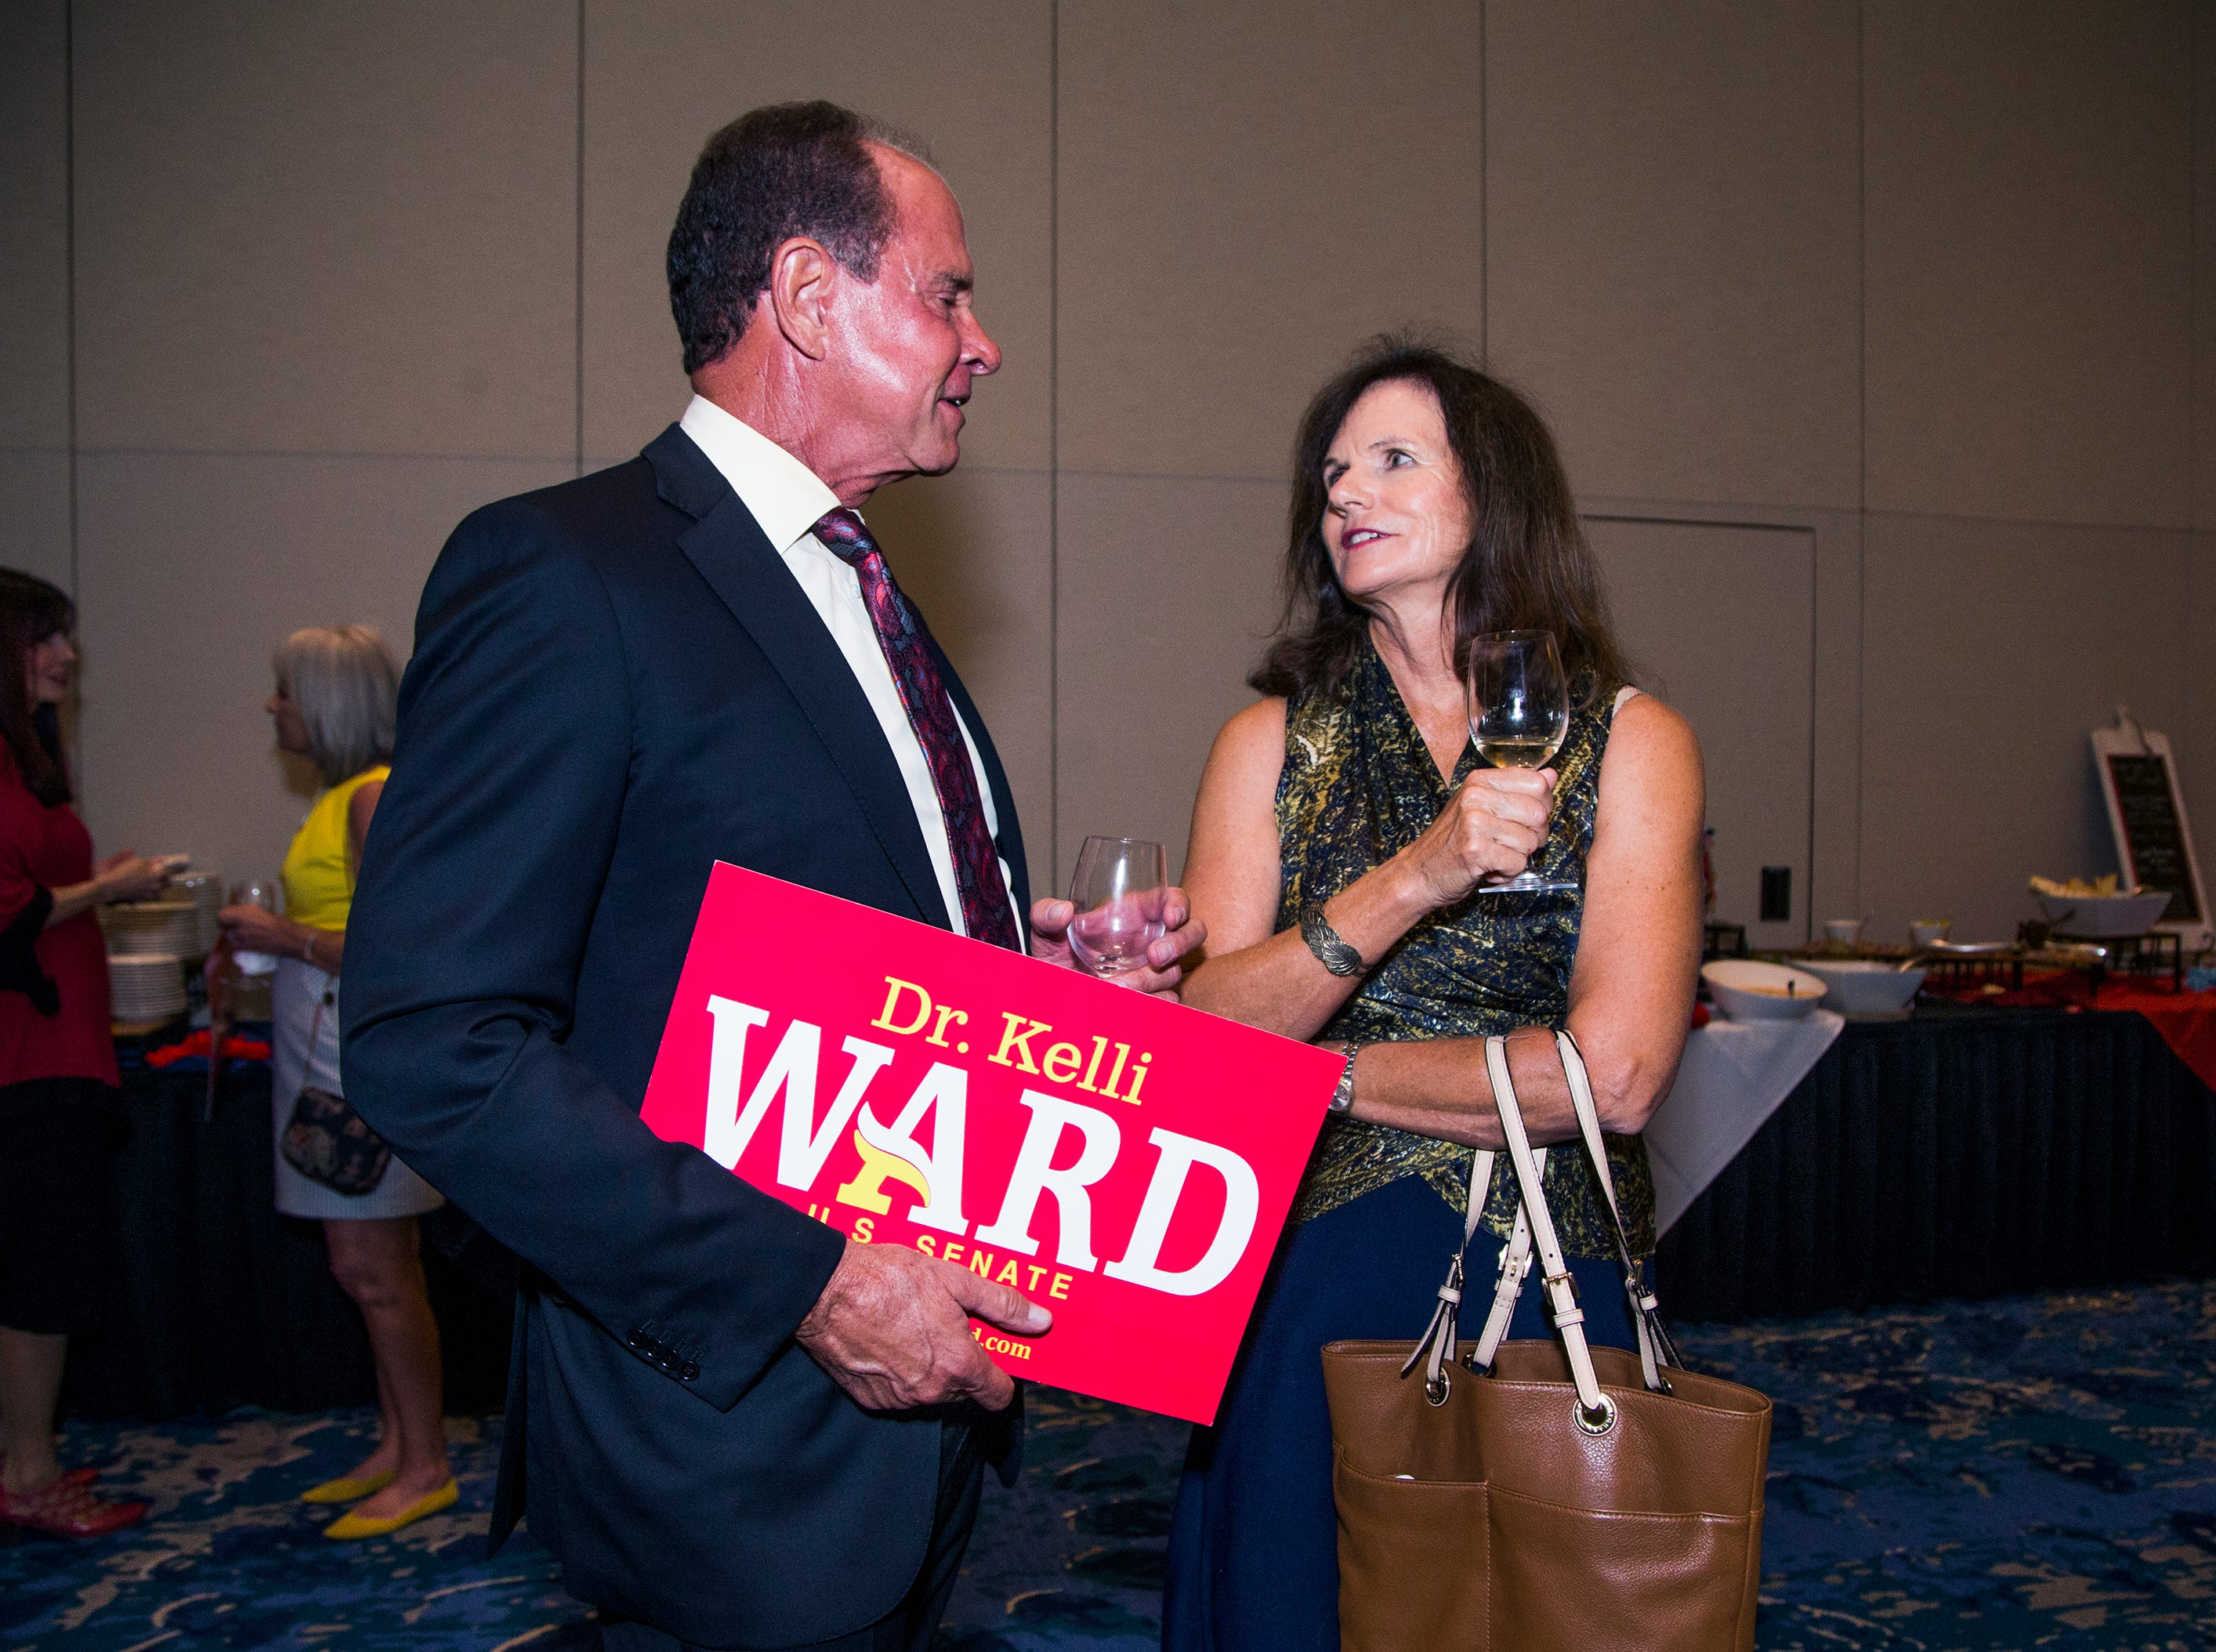 Jim and Kathleen Clark of Phoenix, supporters of Kelli Ward, wait for her appearance at a primary election night party at Embassy Suites Scottsdale, Aug. 28, 2018.